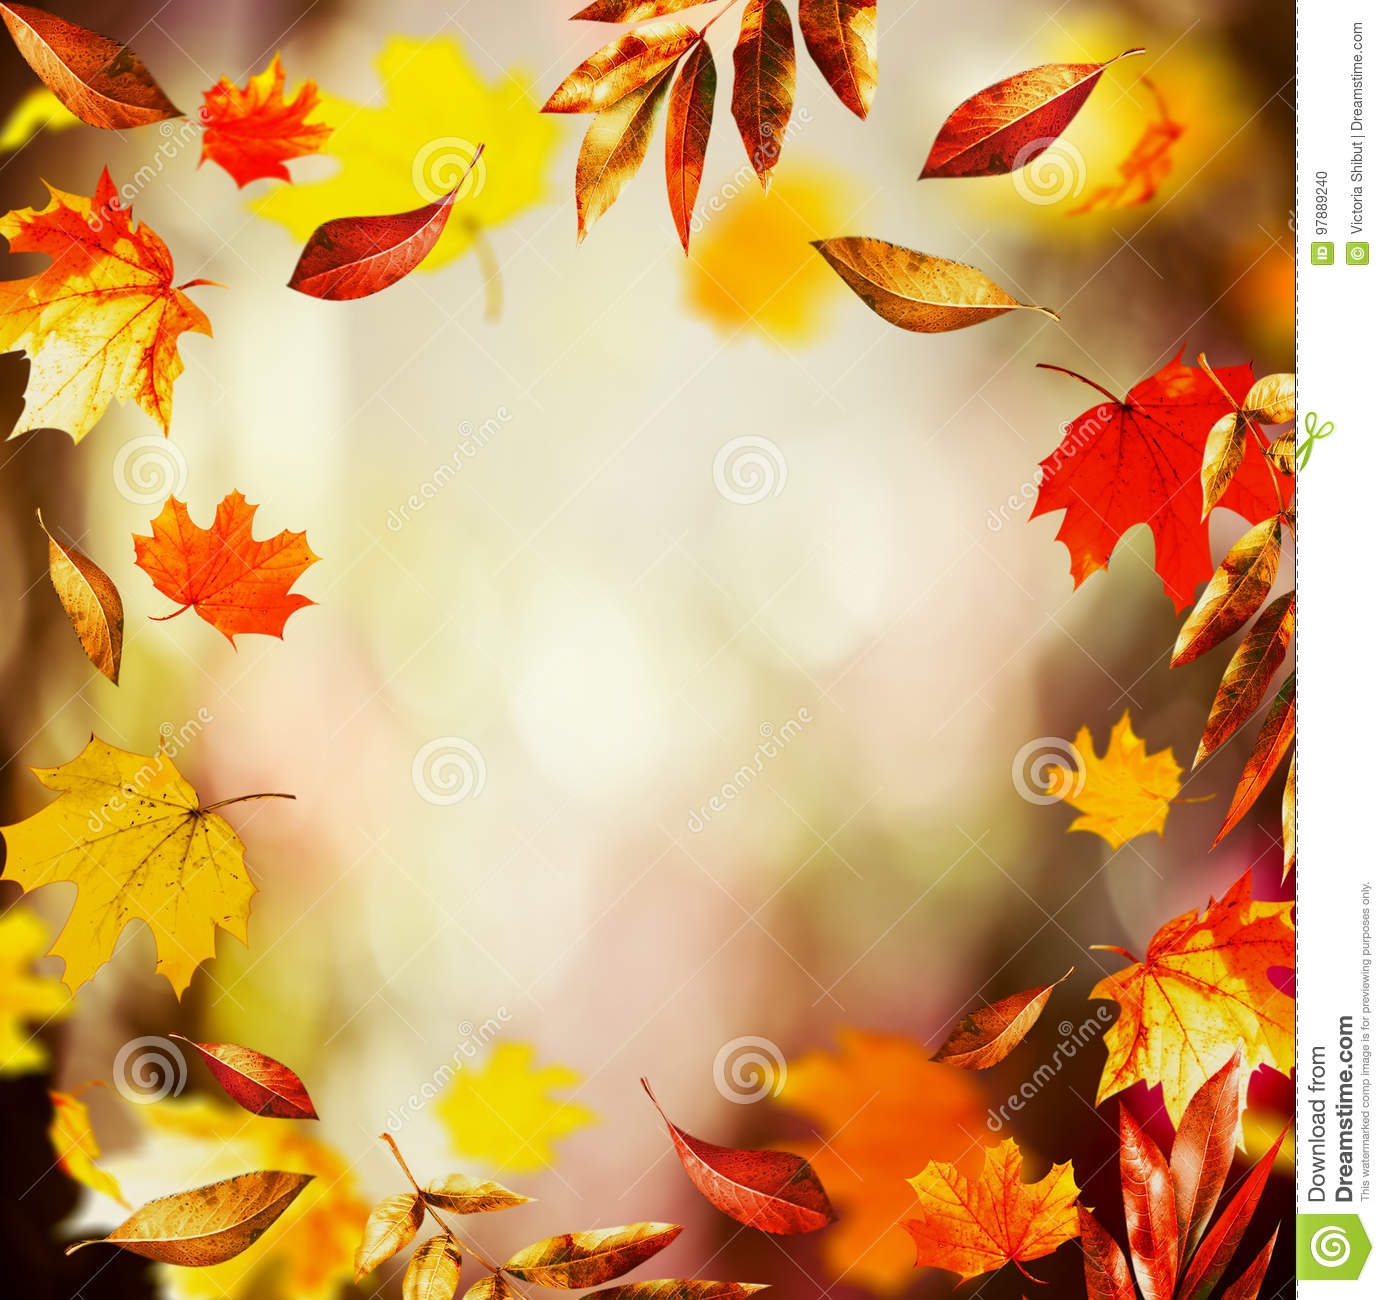 Autumn background with Beautiful falling leaves and bokeh, fall nature in garden